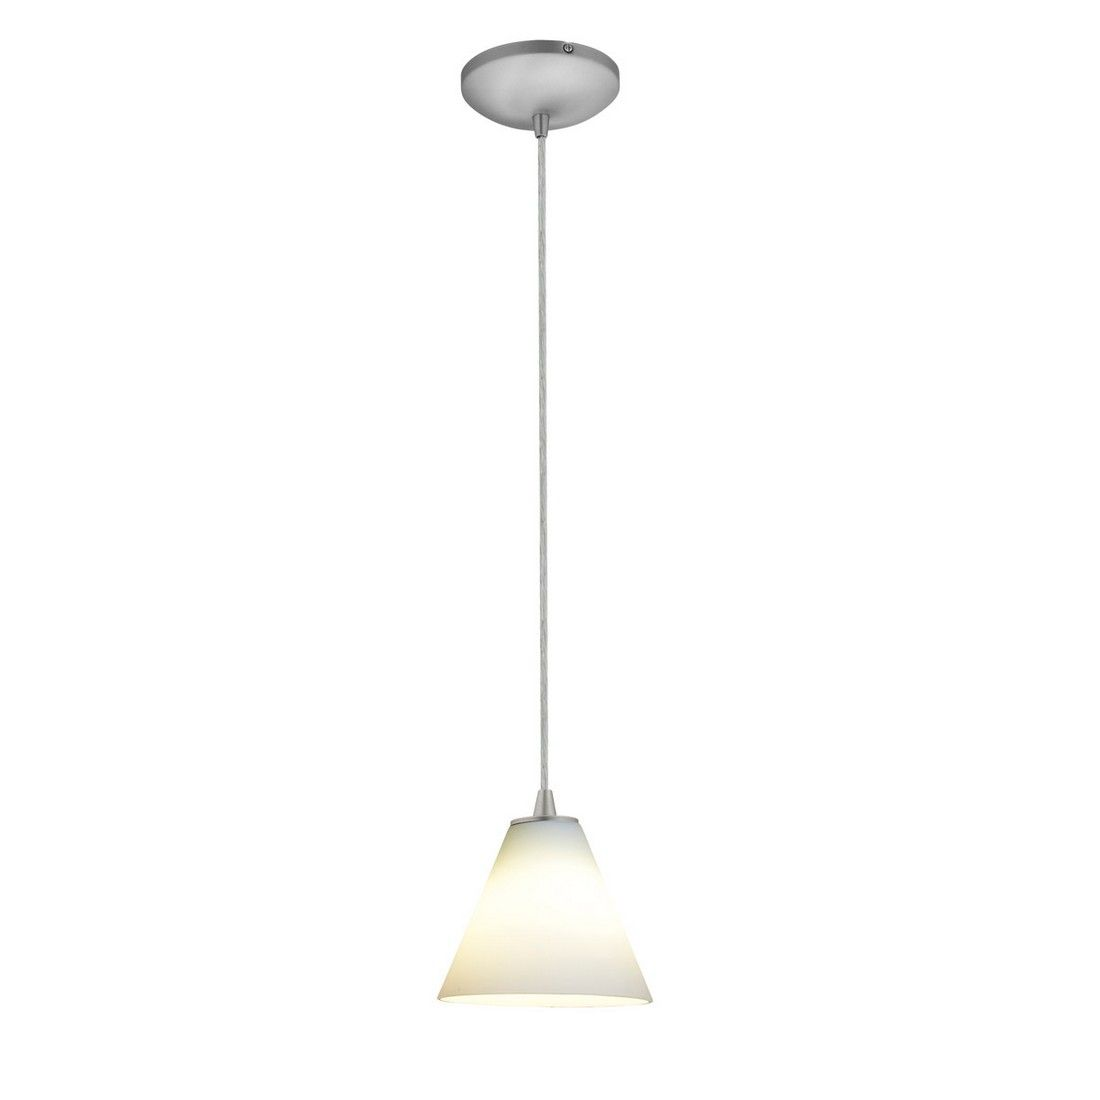 Access Lighting Martini White Gl Corded Pendant In Brushed Steel